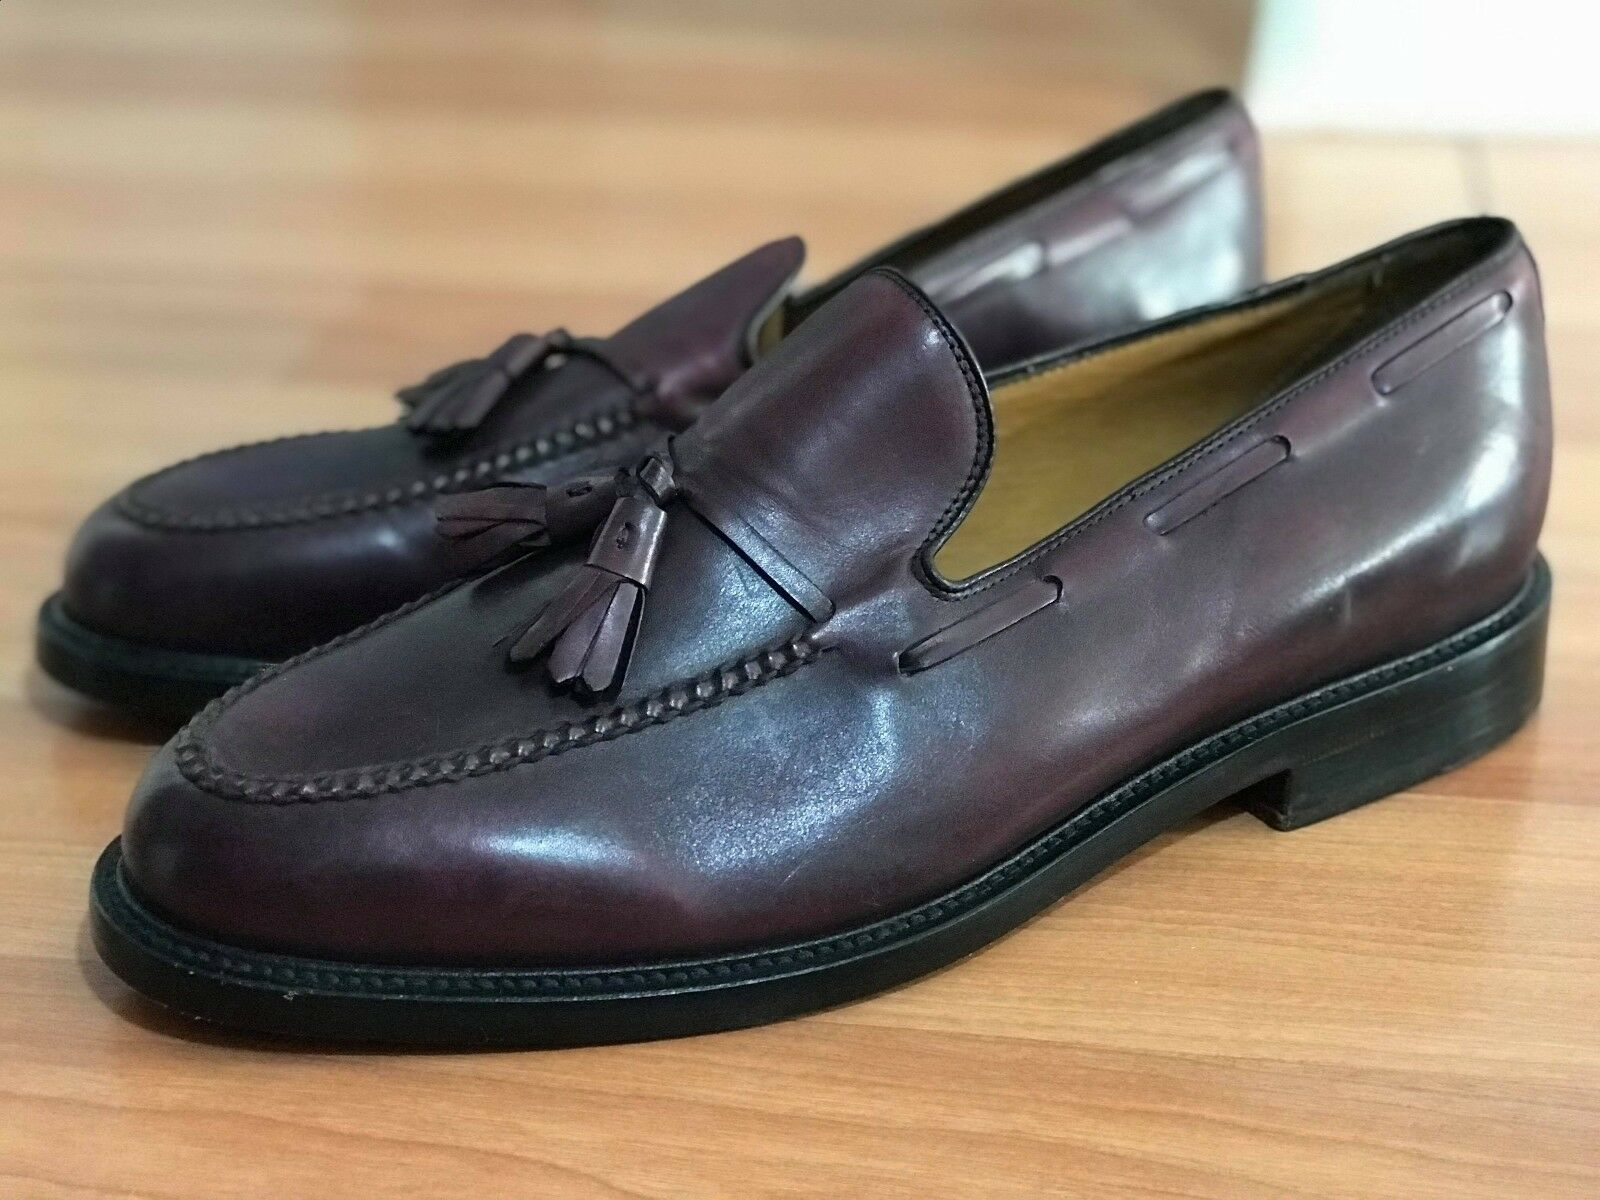 LeS END Men Burgundy Leather sautope Dimensione 10.5 nuovo WOT sautope tree not included